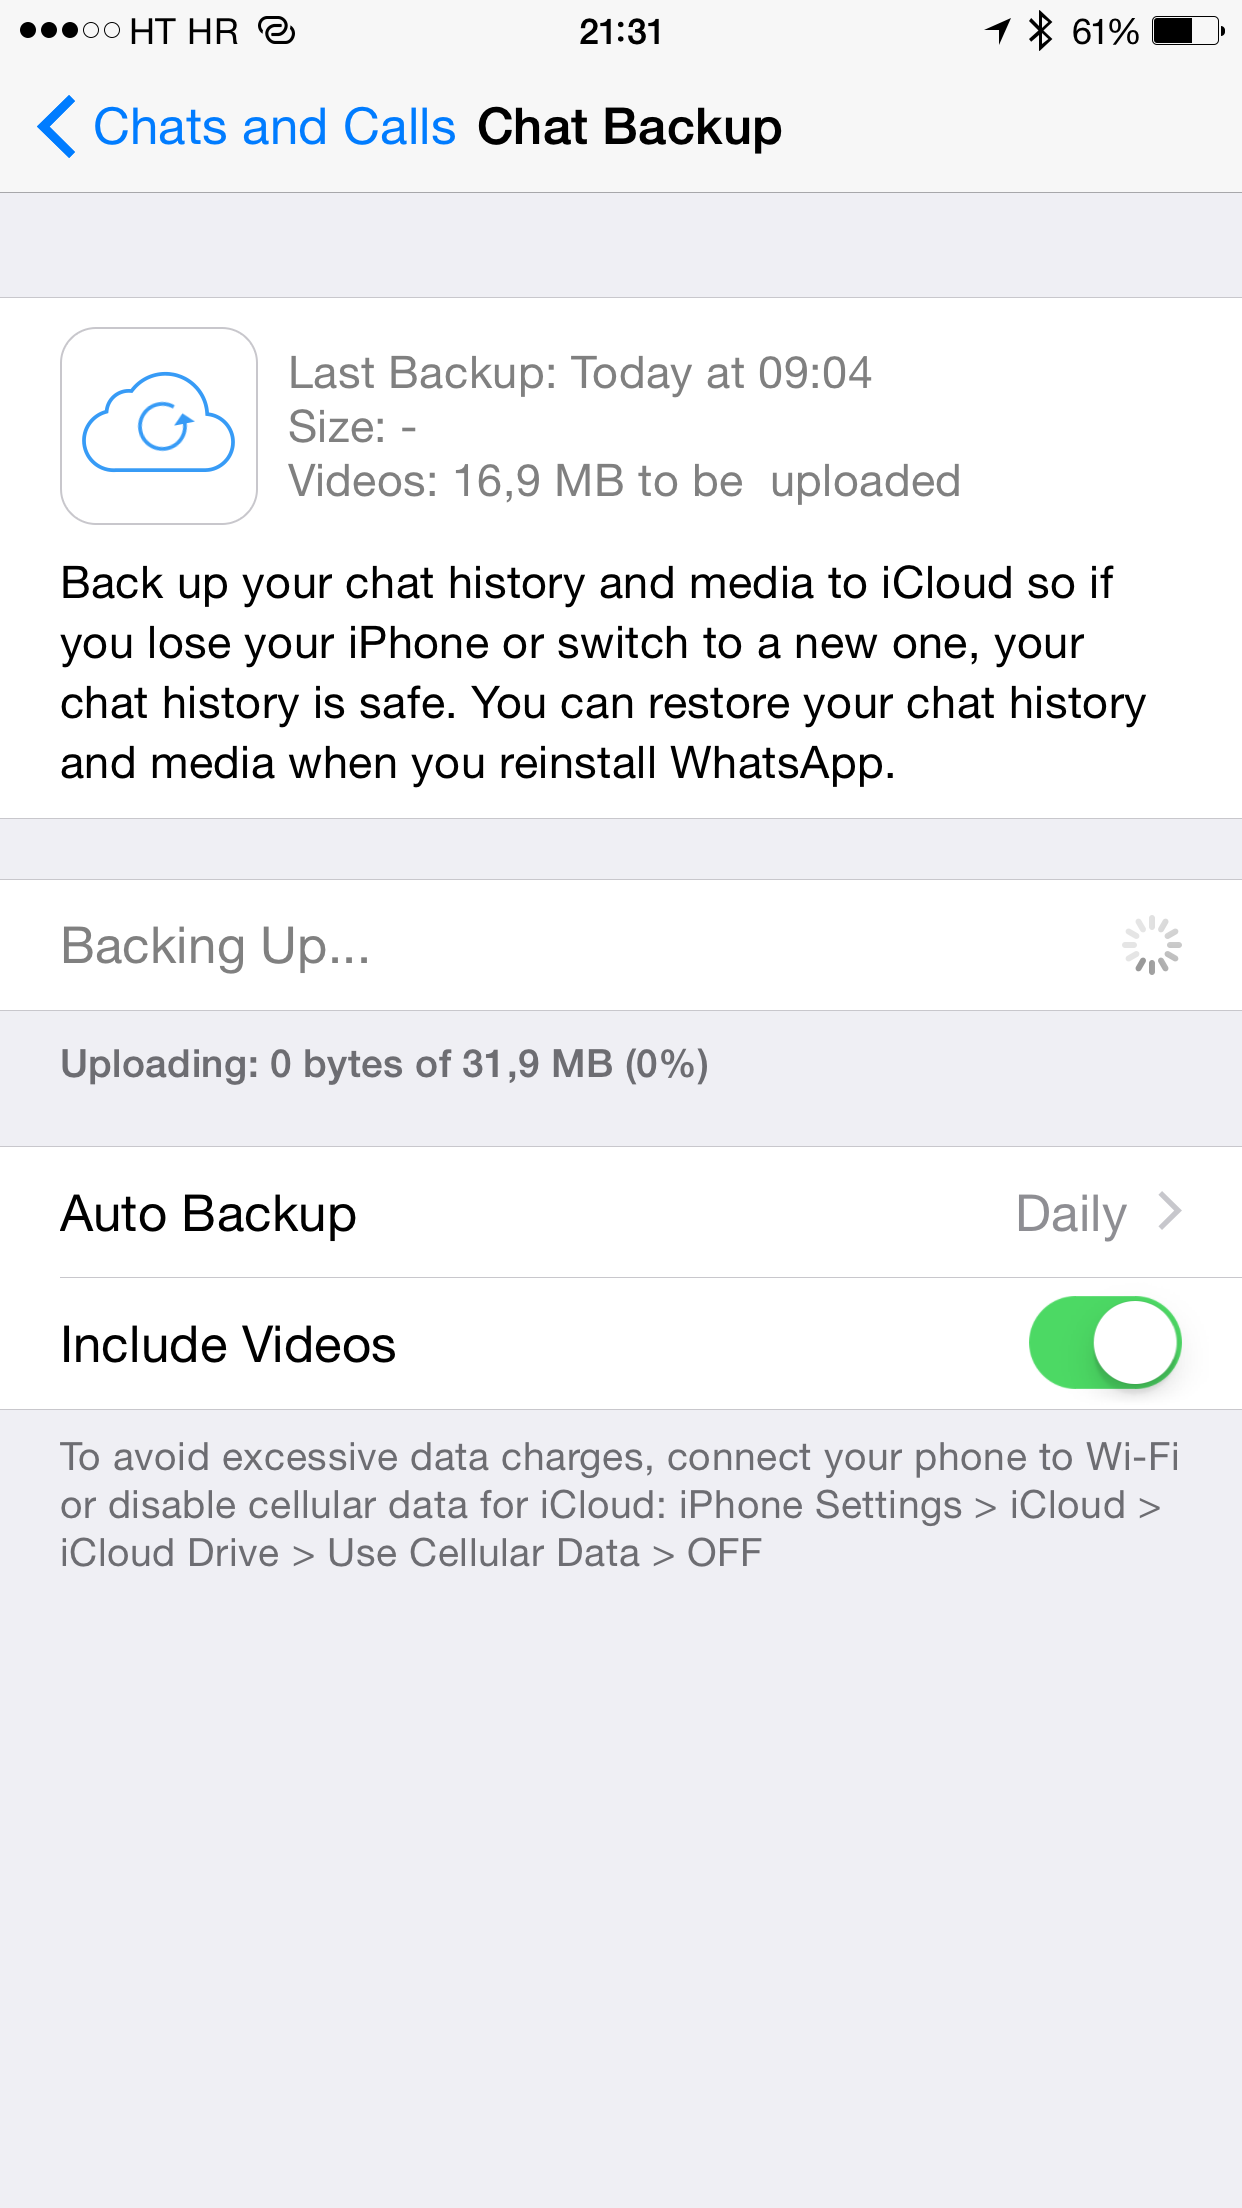 WhatsApp 2.12.5 for iOS iPhone screenshot 010